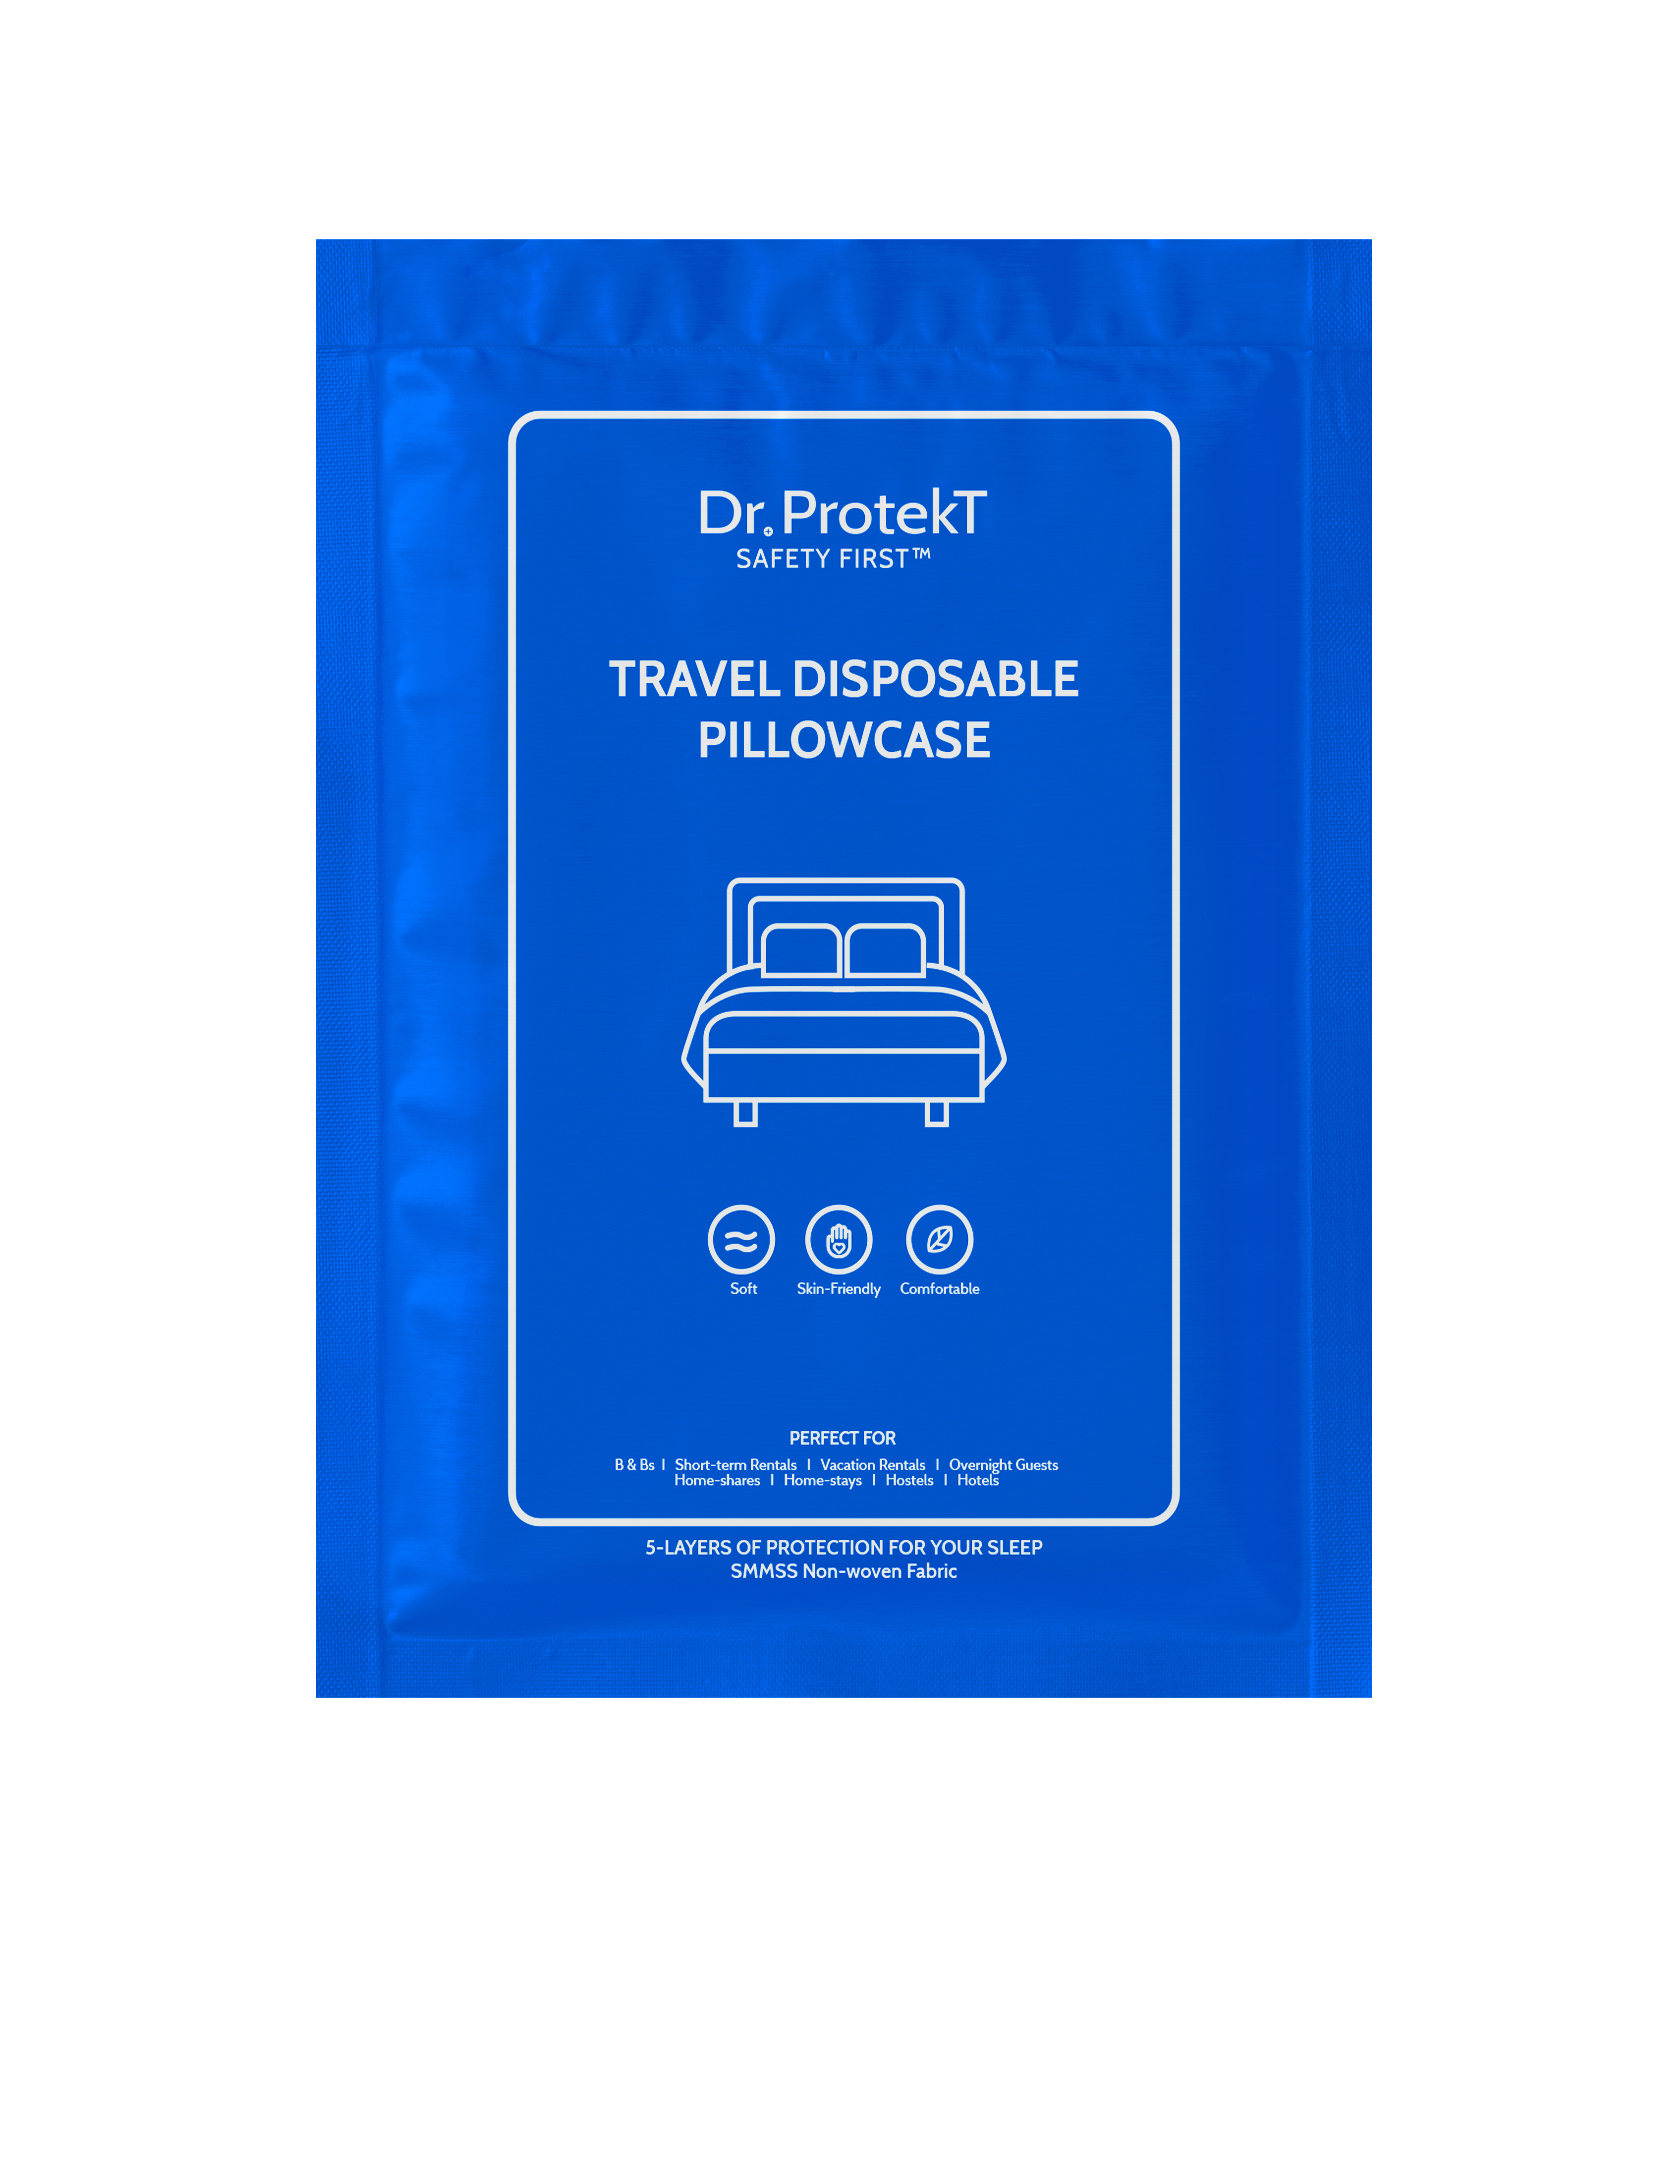 TRAVEL DISPOSABLE PILLOWCASE